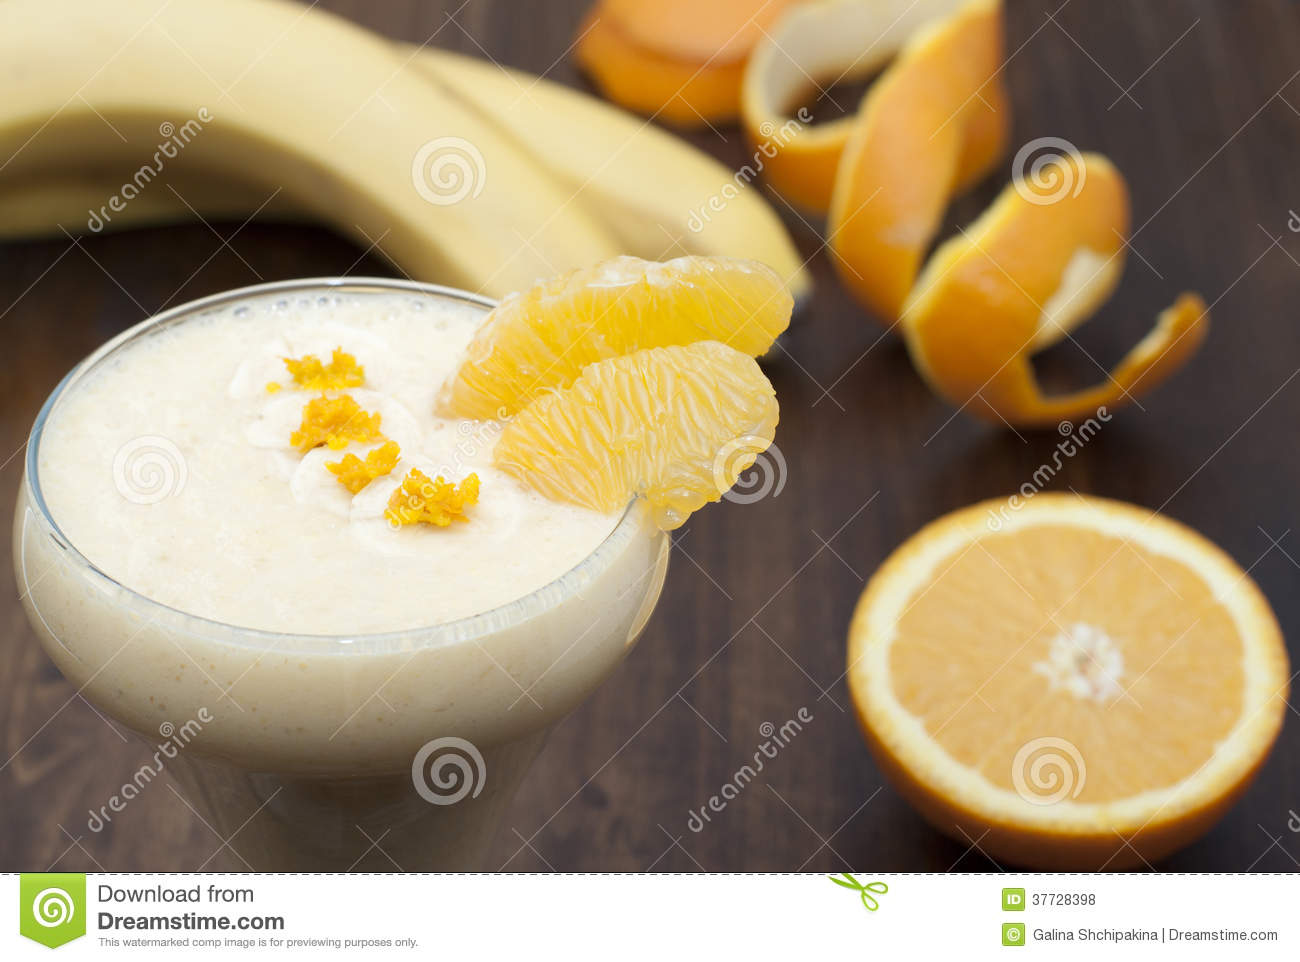 Cocktail of banana with orange